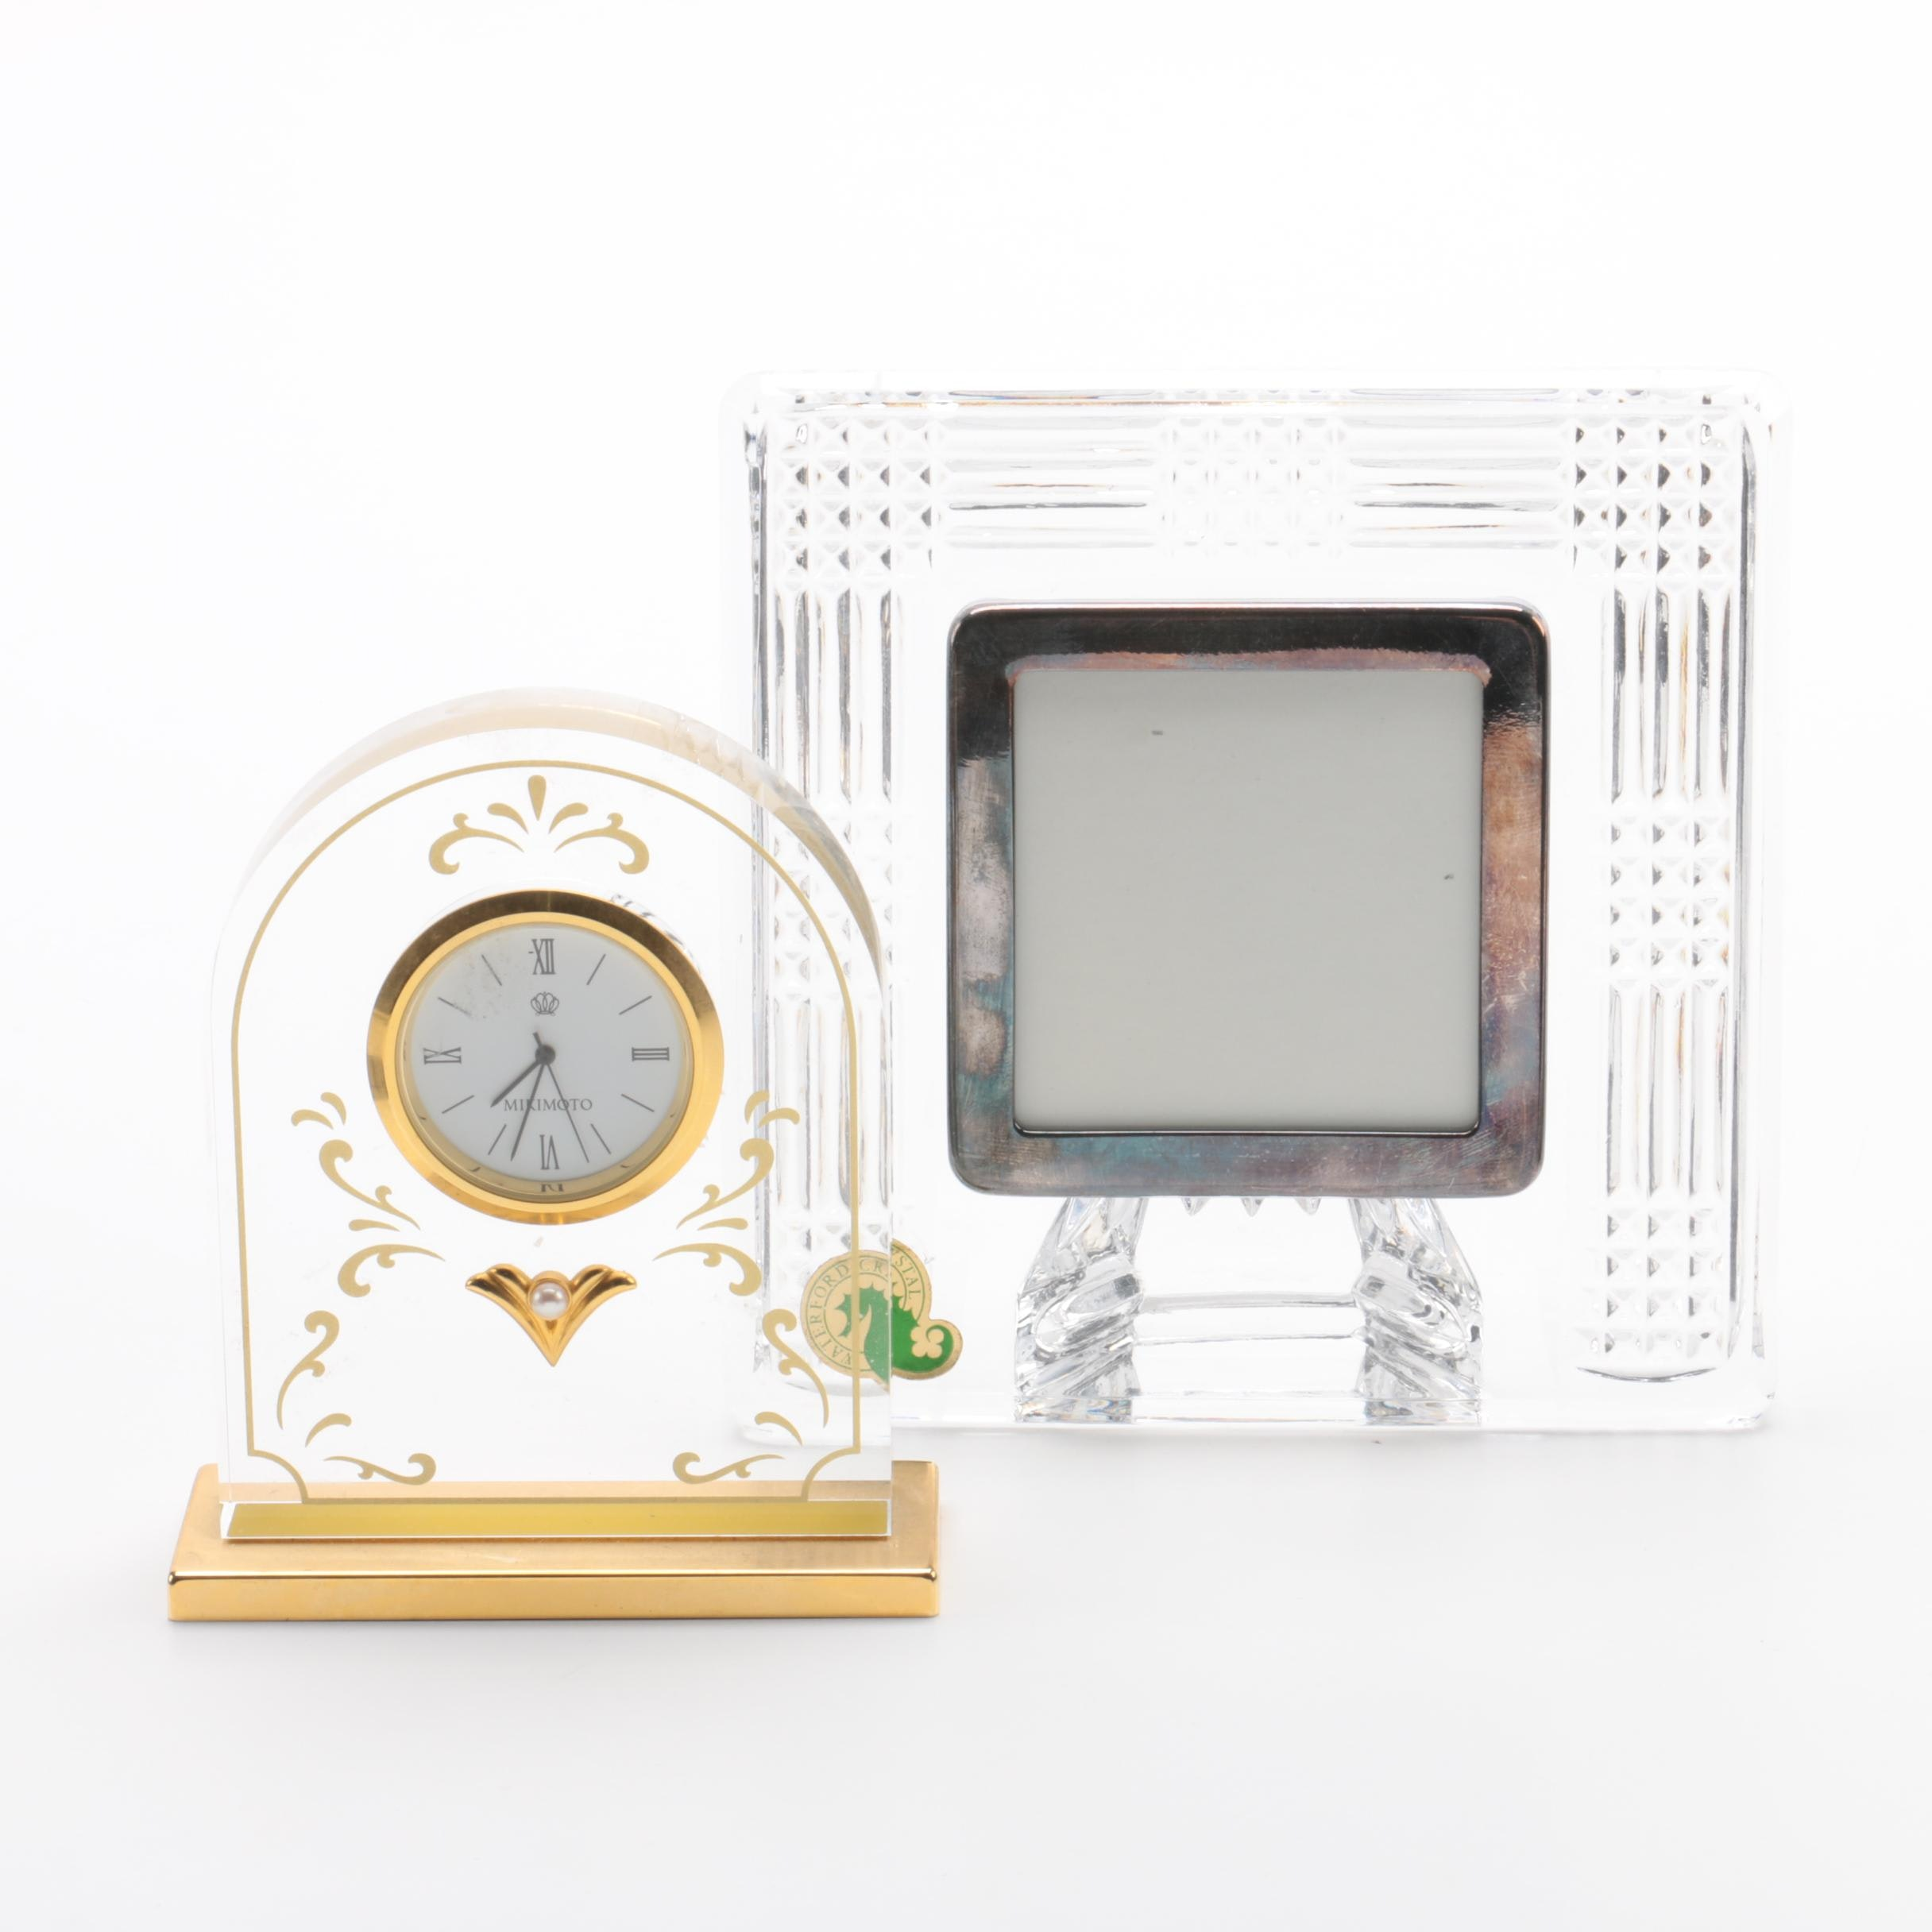 Waterford Crystal Frame with Mikimoto Glass and Gilt Mantel Clock